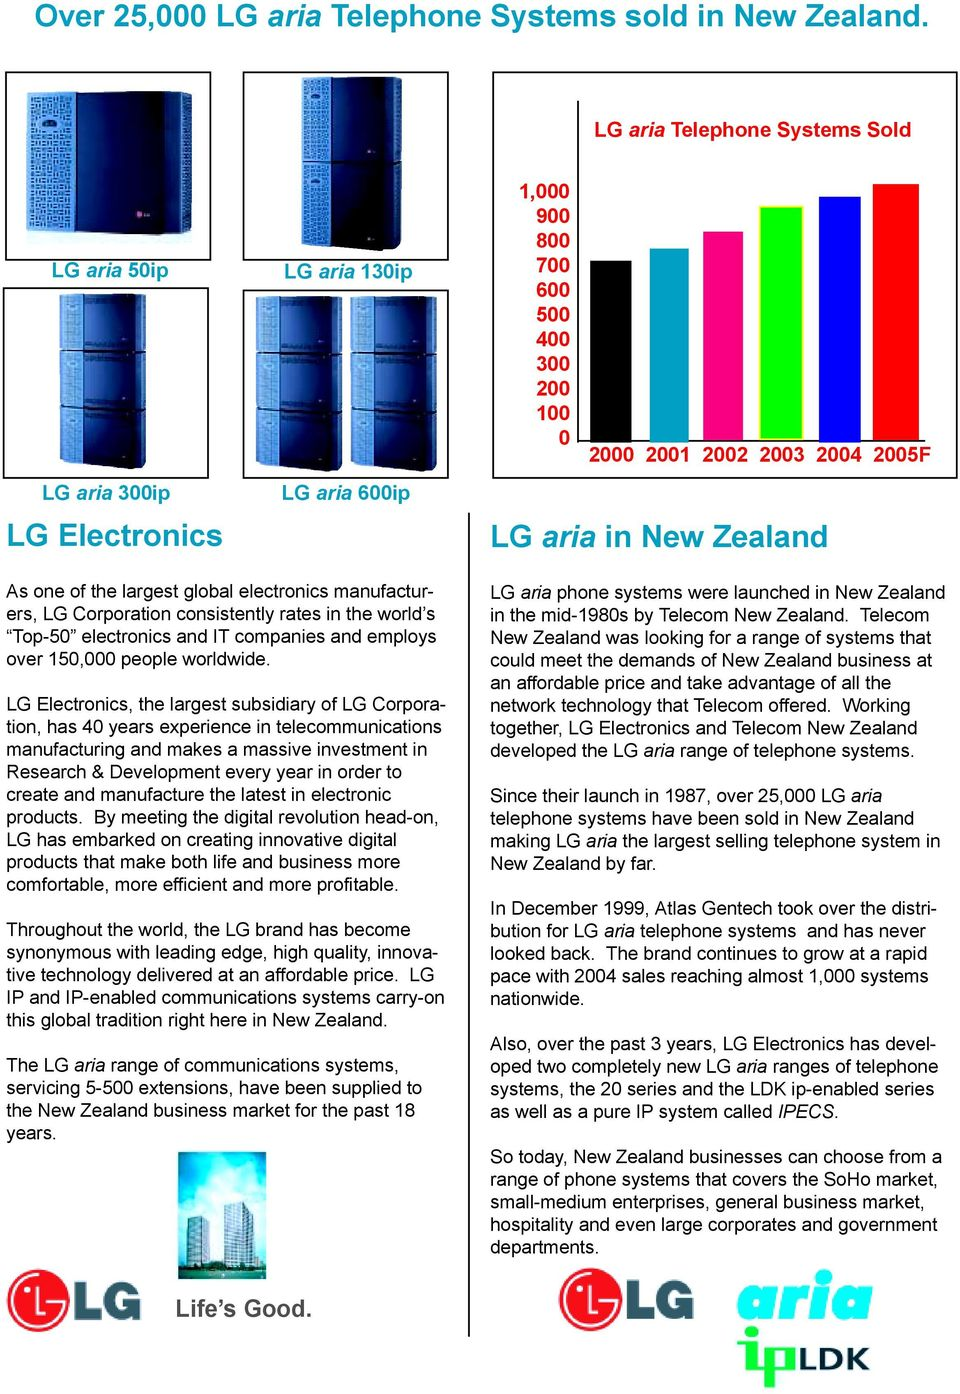 As one of the largest global electronics manufacturers, LG Corporation consistently rates in the world s Top-50 electronics and IT companies and employs over 150,000 people worldwide.